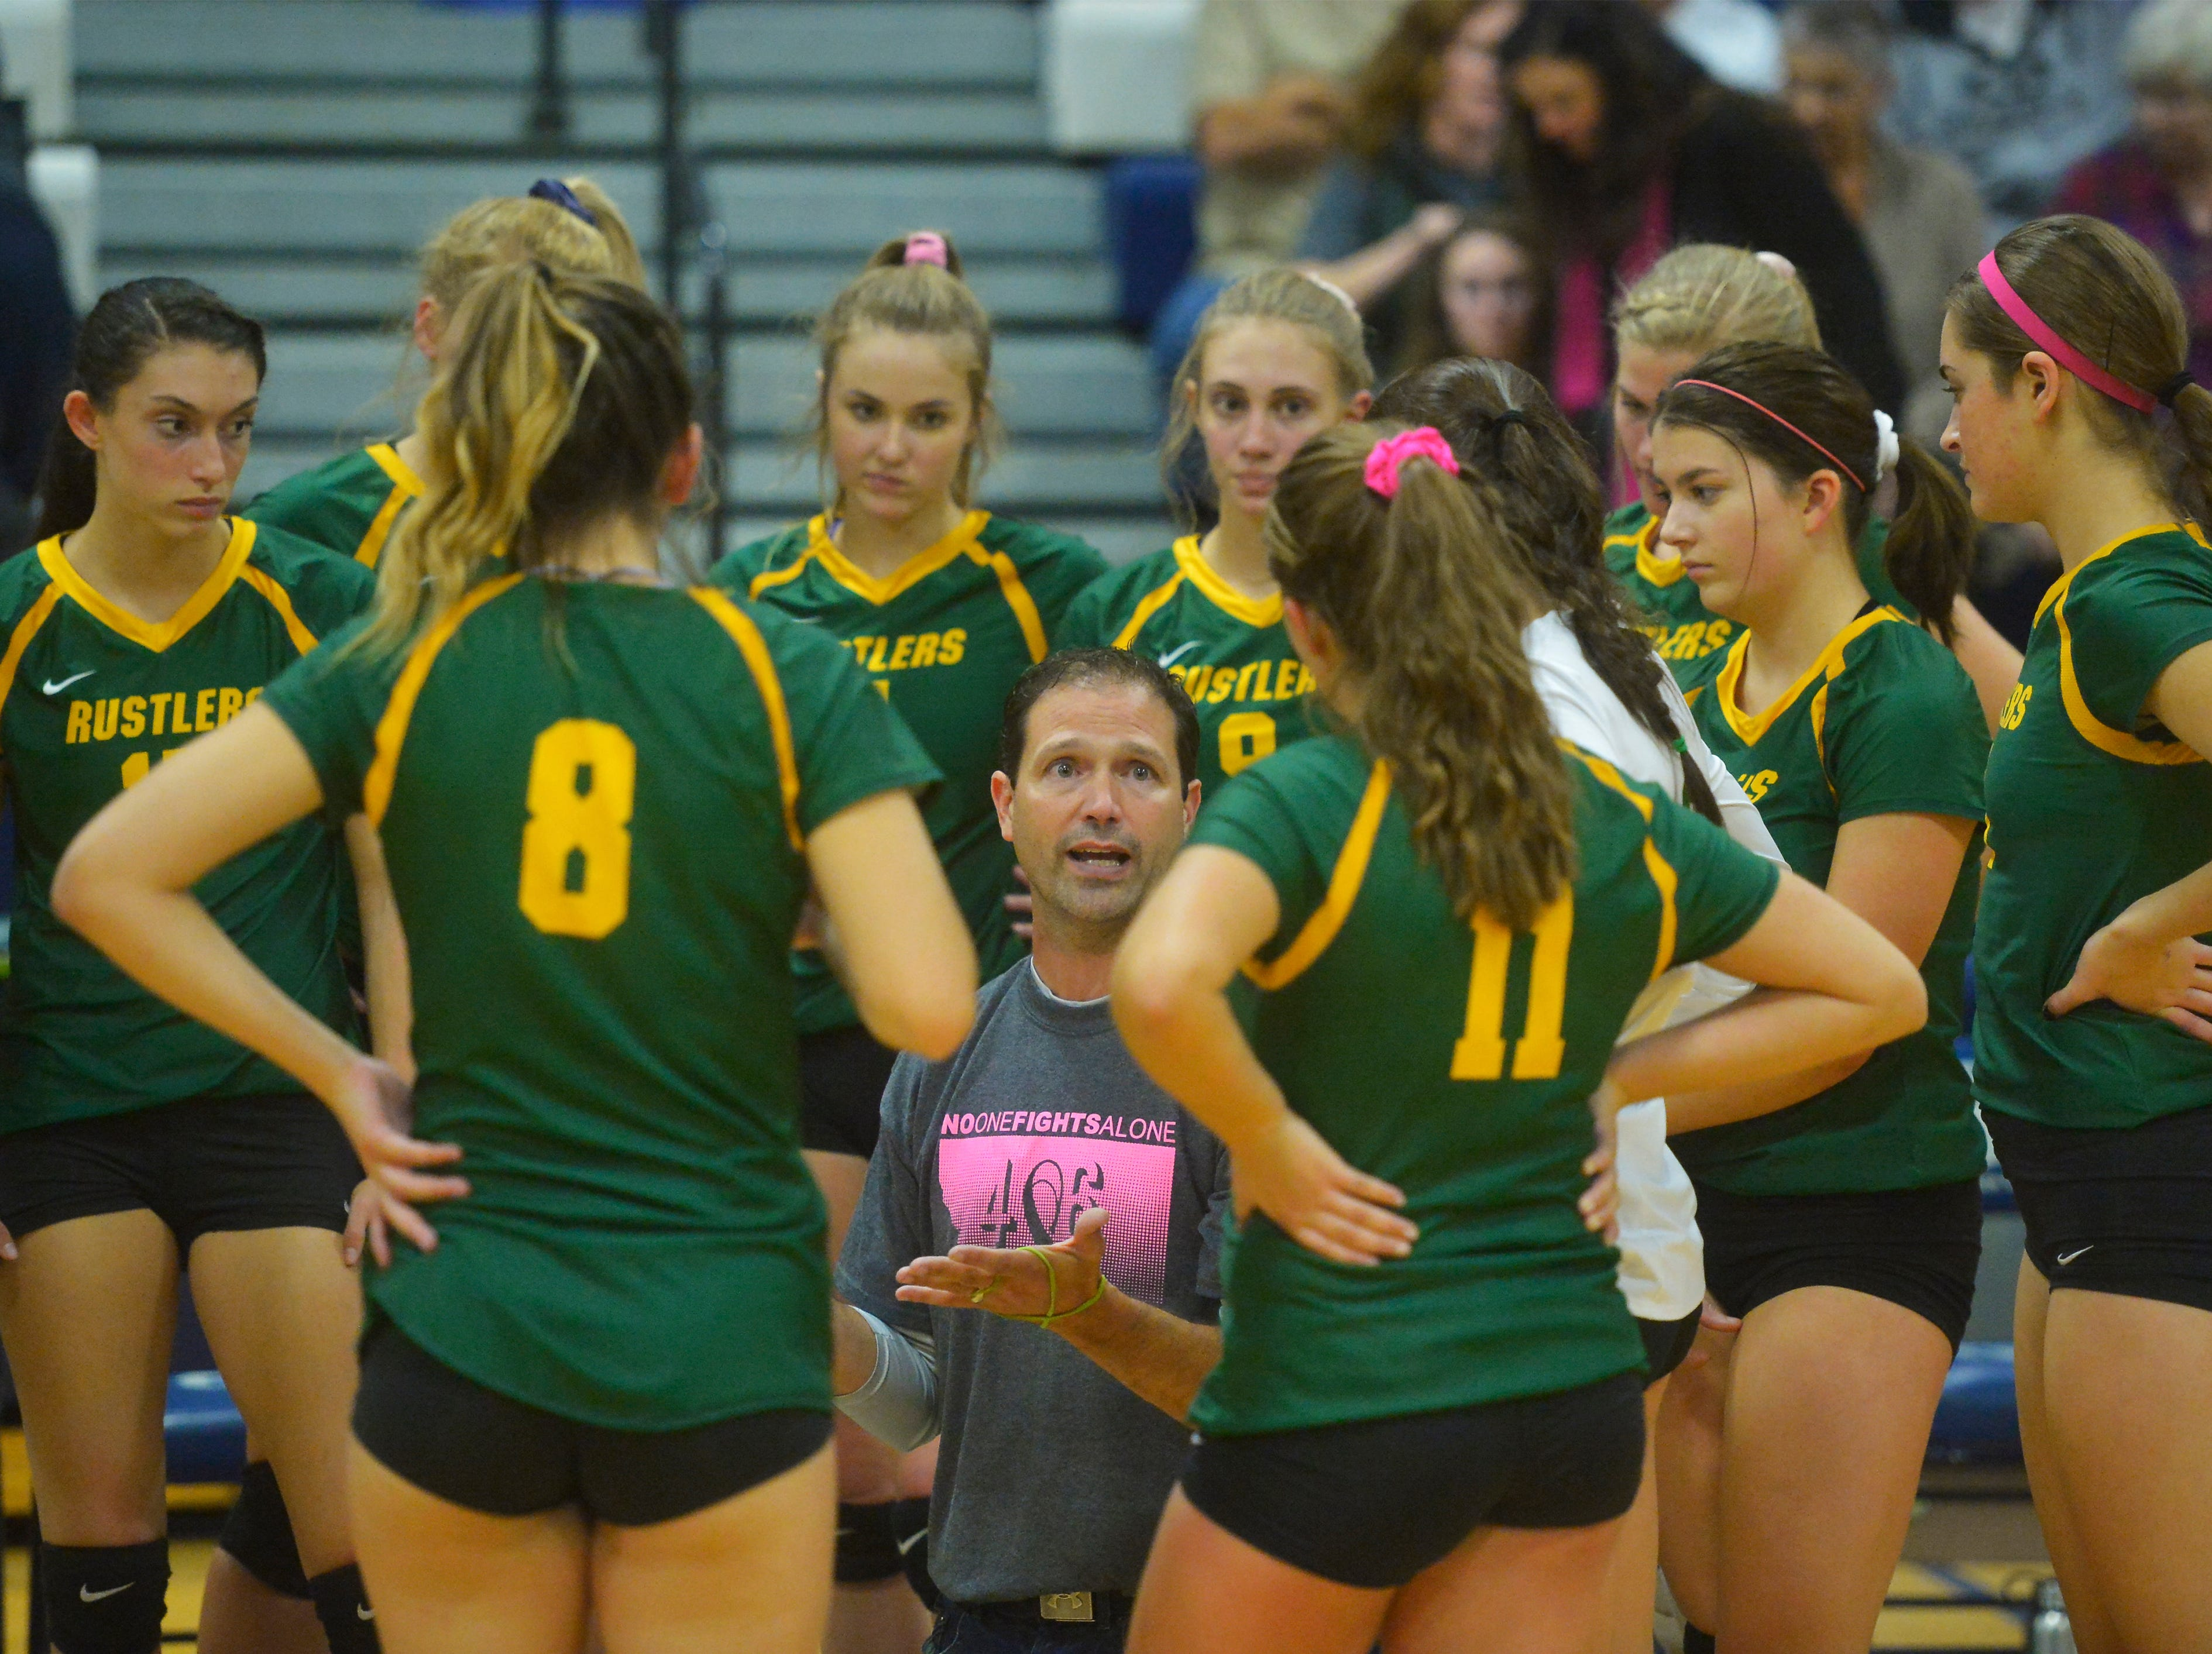 CMR coach Patrick Hiller huddles with his team during the crosstown volleyball match in the Swarthout Fieldhouse, Tuesday.